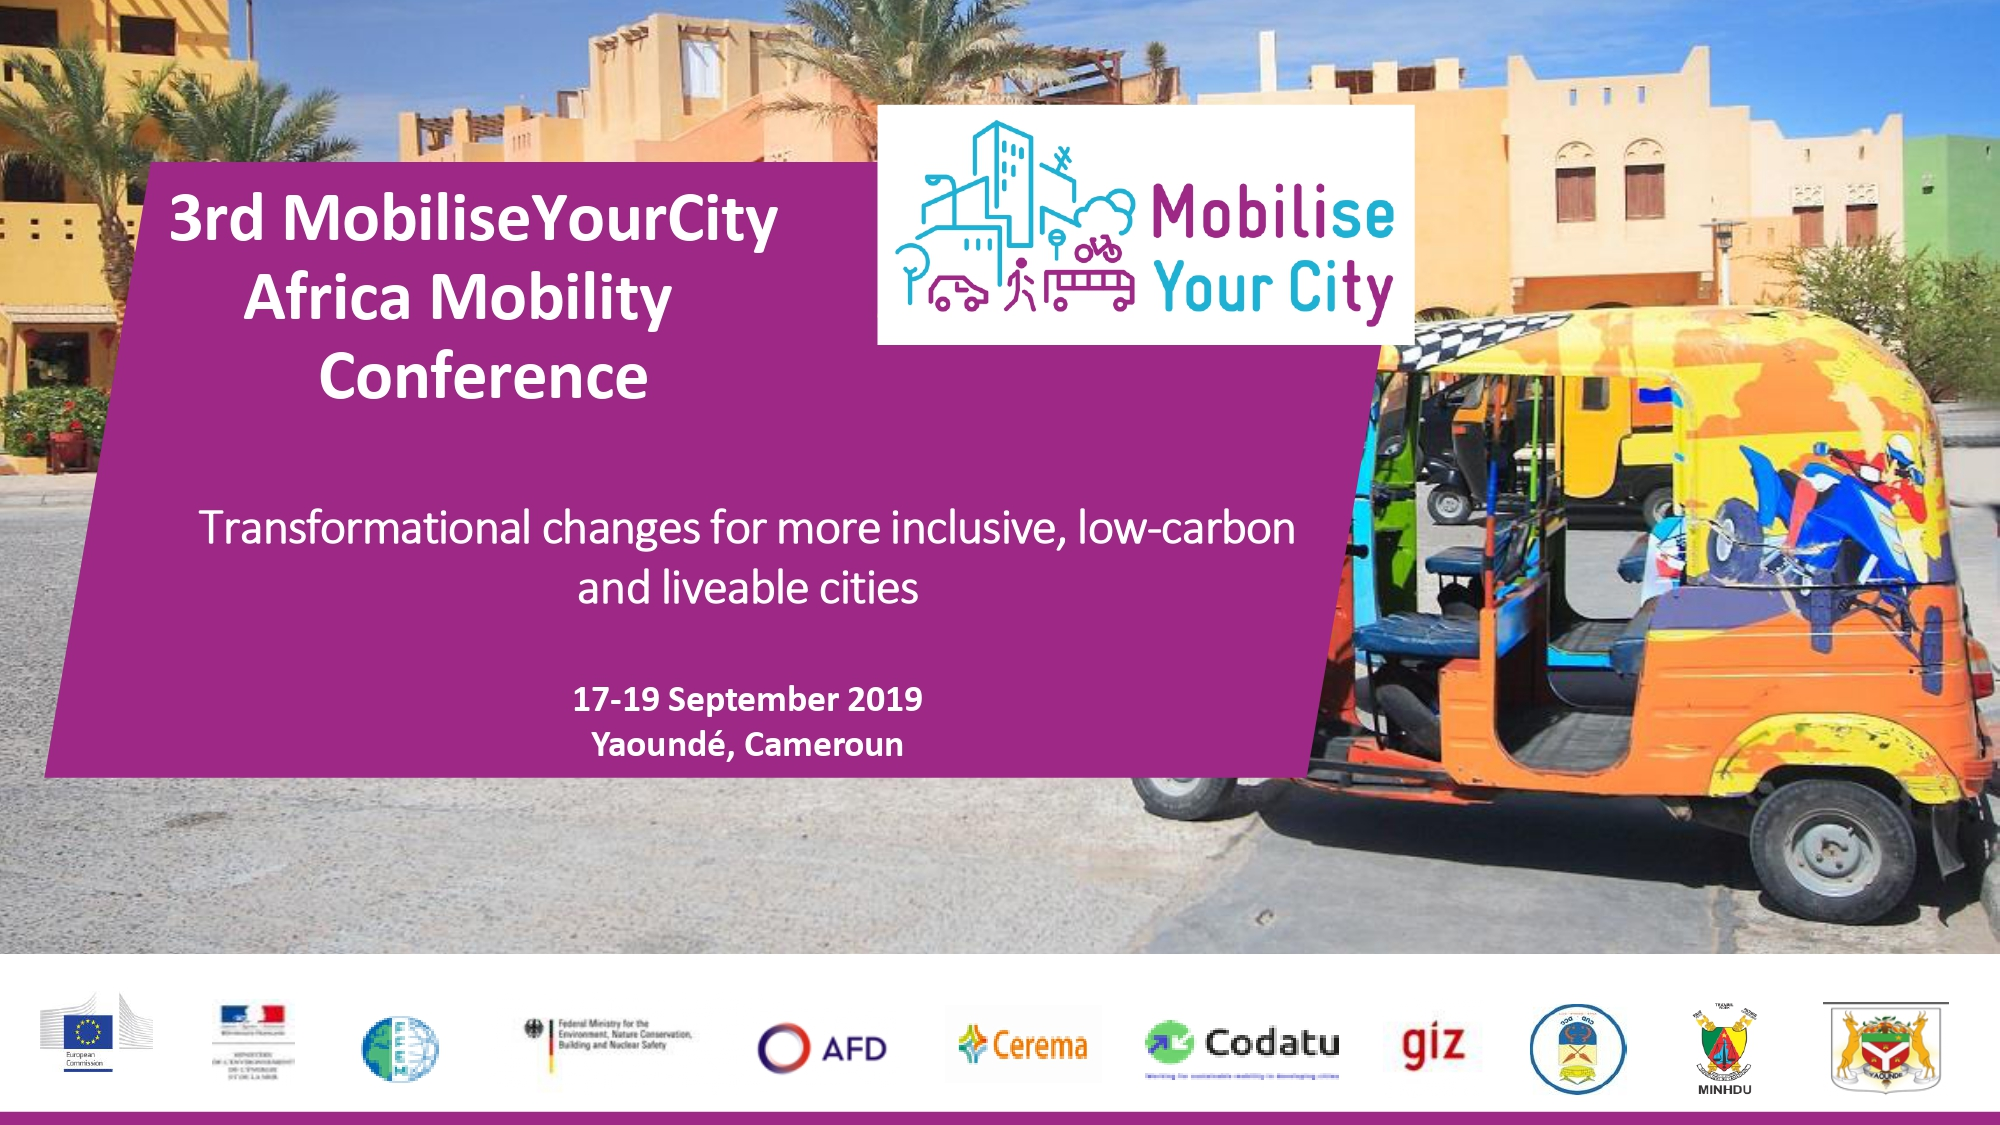 17-19 September: 3rd MobiliseYourCity Africa Mobility Conference in Yaoundé, Cameroon